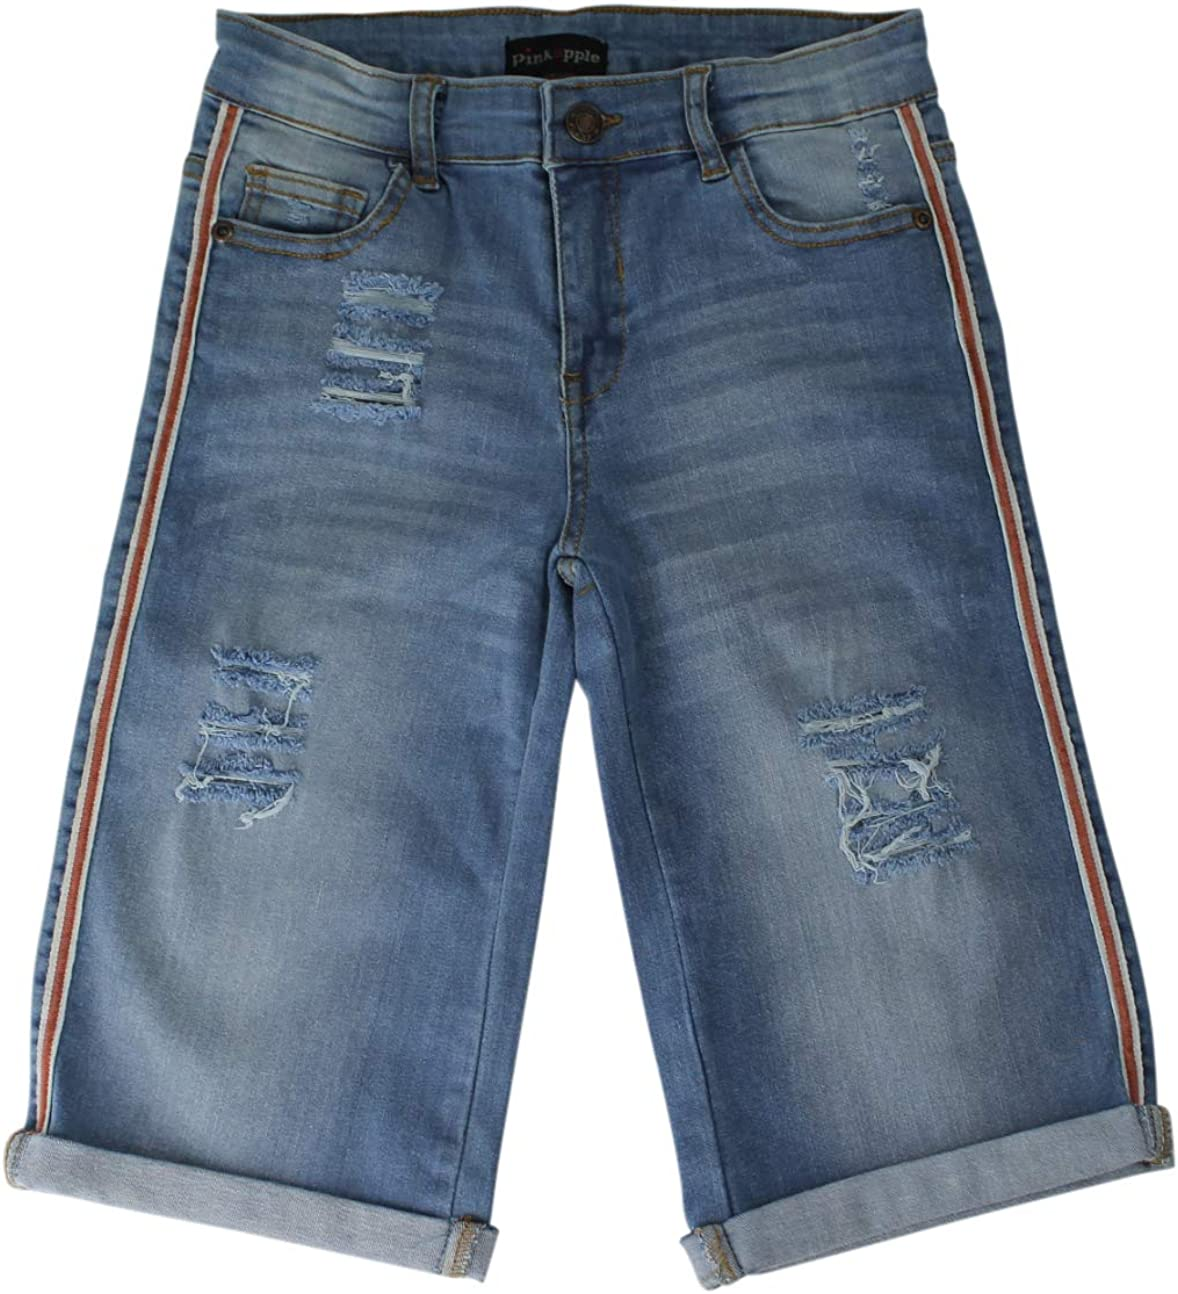 7-13 Years Ozmoint Girls Stretch Denim Side Stripe Long Peddle Pusher Shorts with rips and 5 Pockets Jean